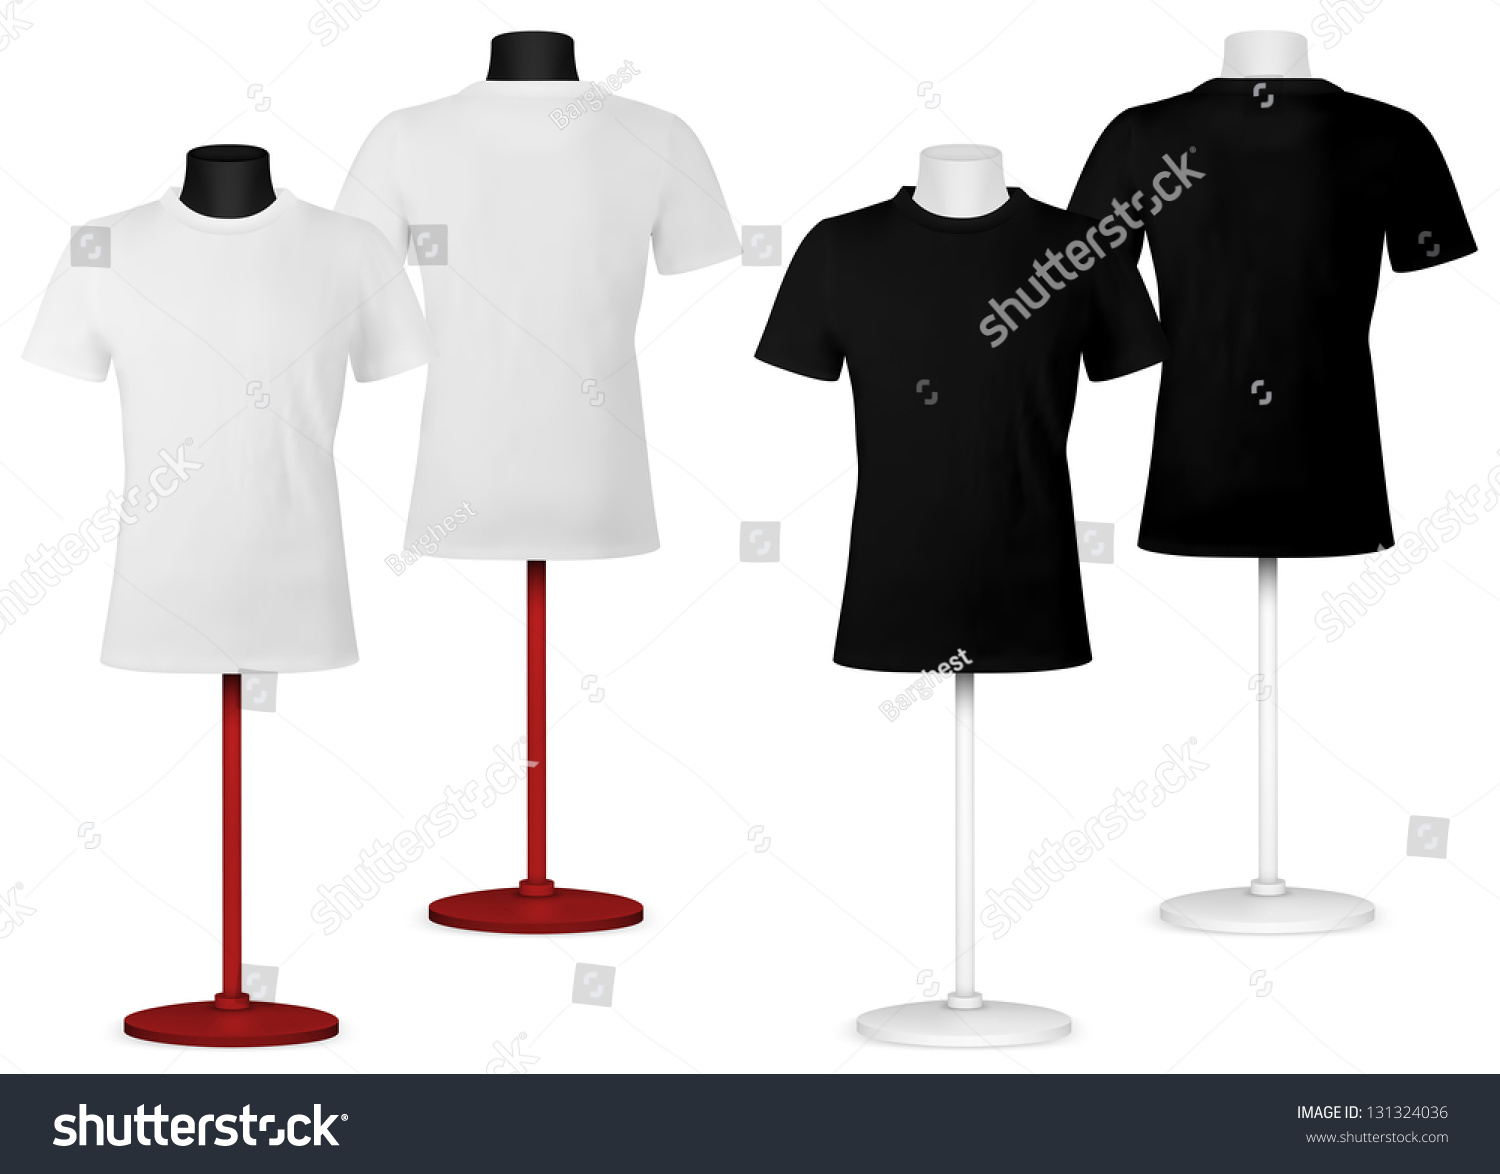 Black t shirt front and back plain - Plain T Shirt On Mannequin Torso Template Front And Back Views